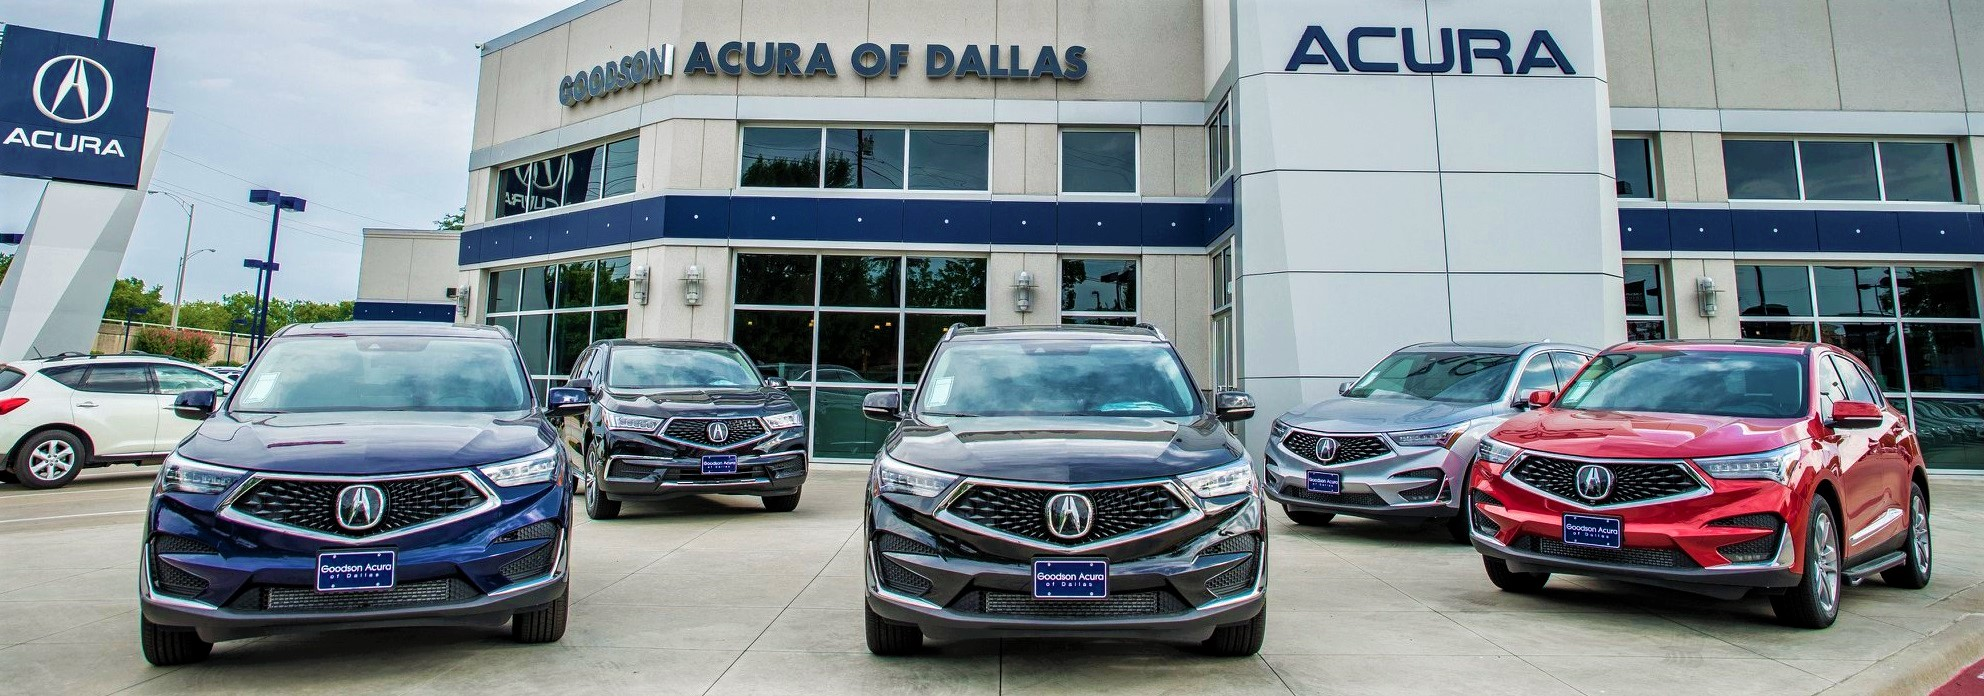 New 2019 Acura & Used Car Dealer Dallas Fort Worth | Goodson Acura